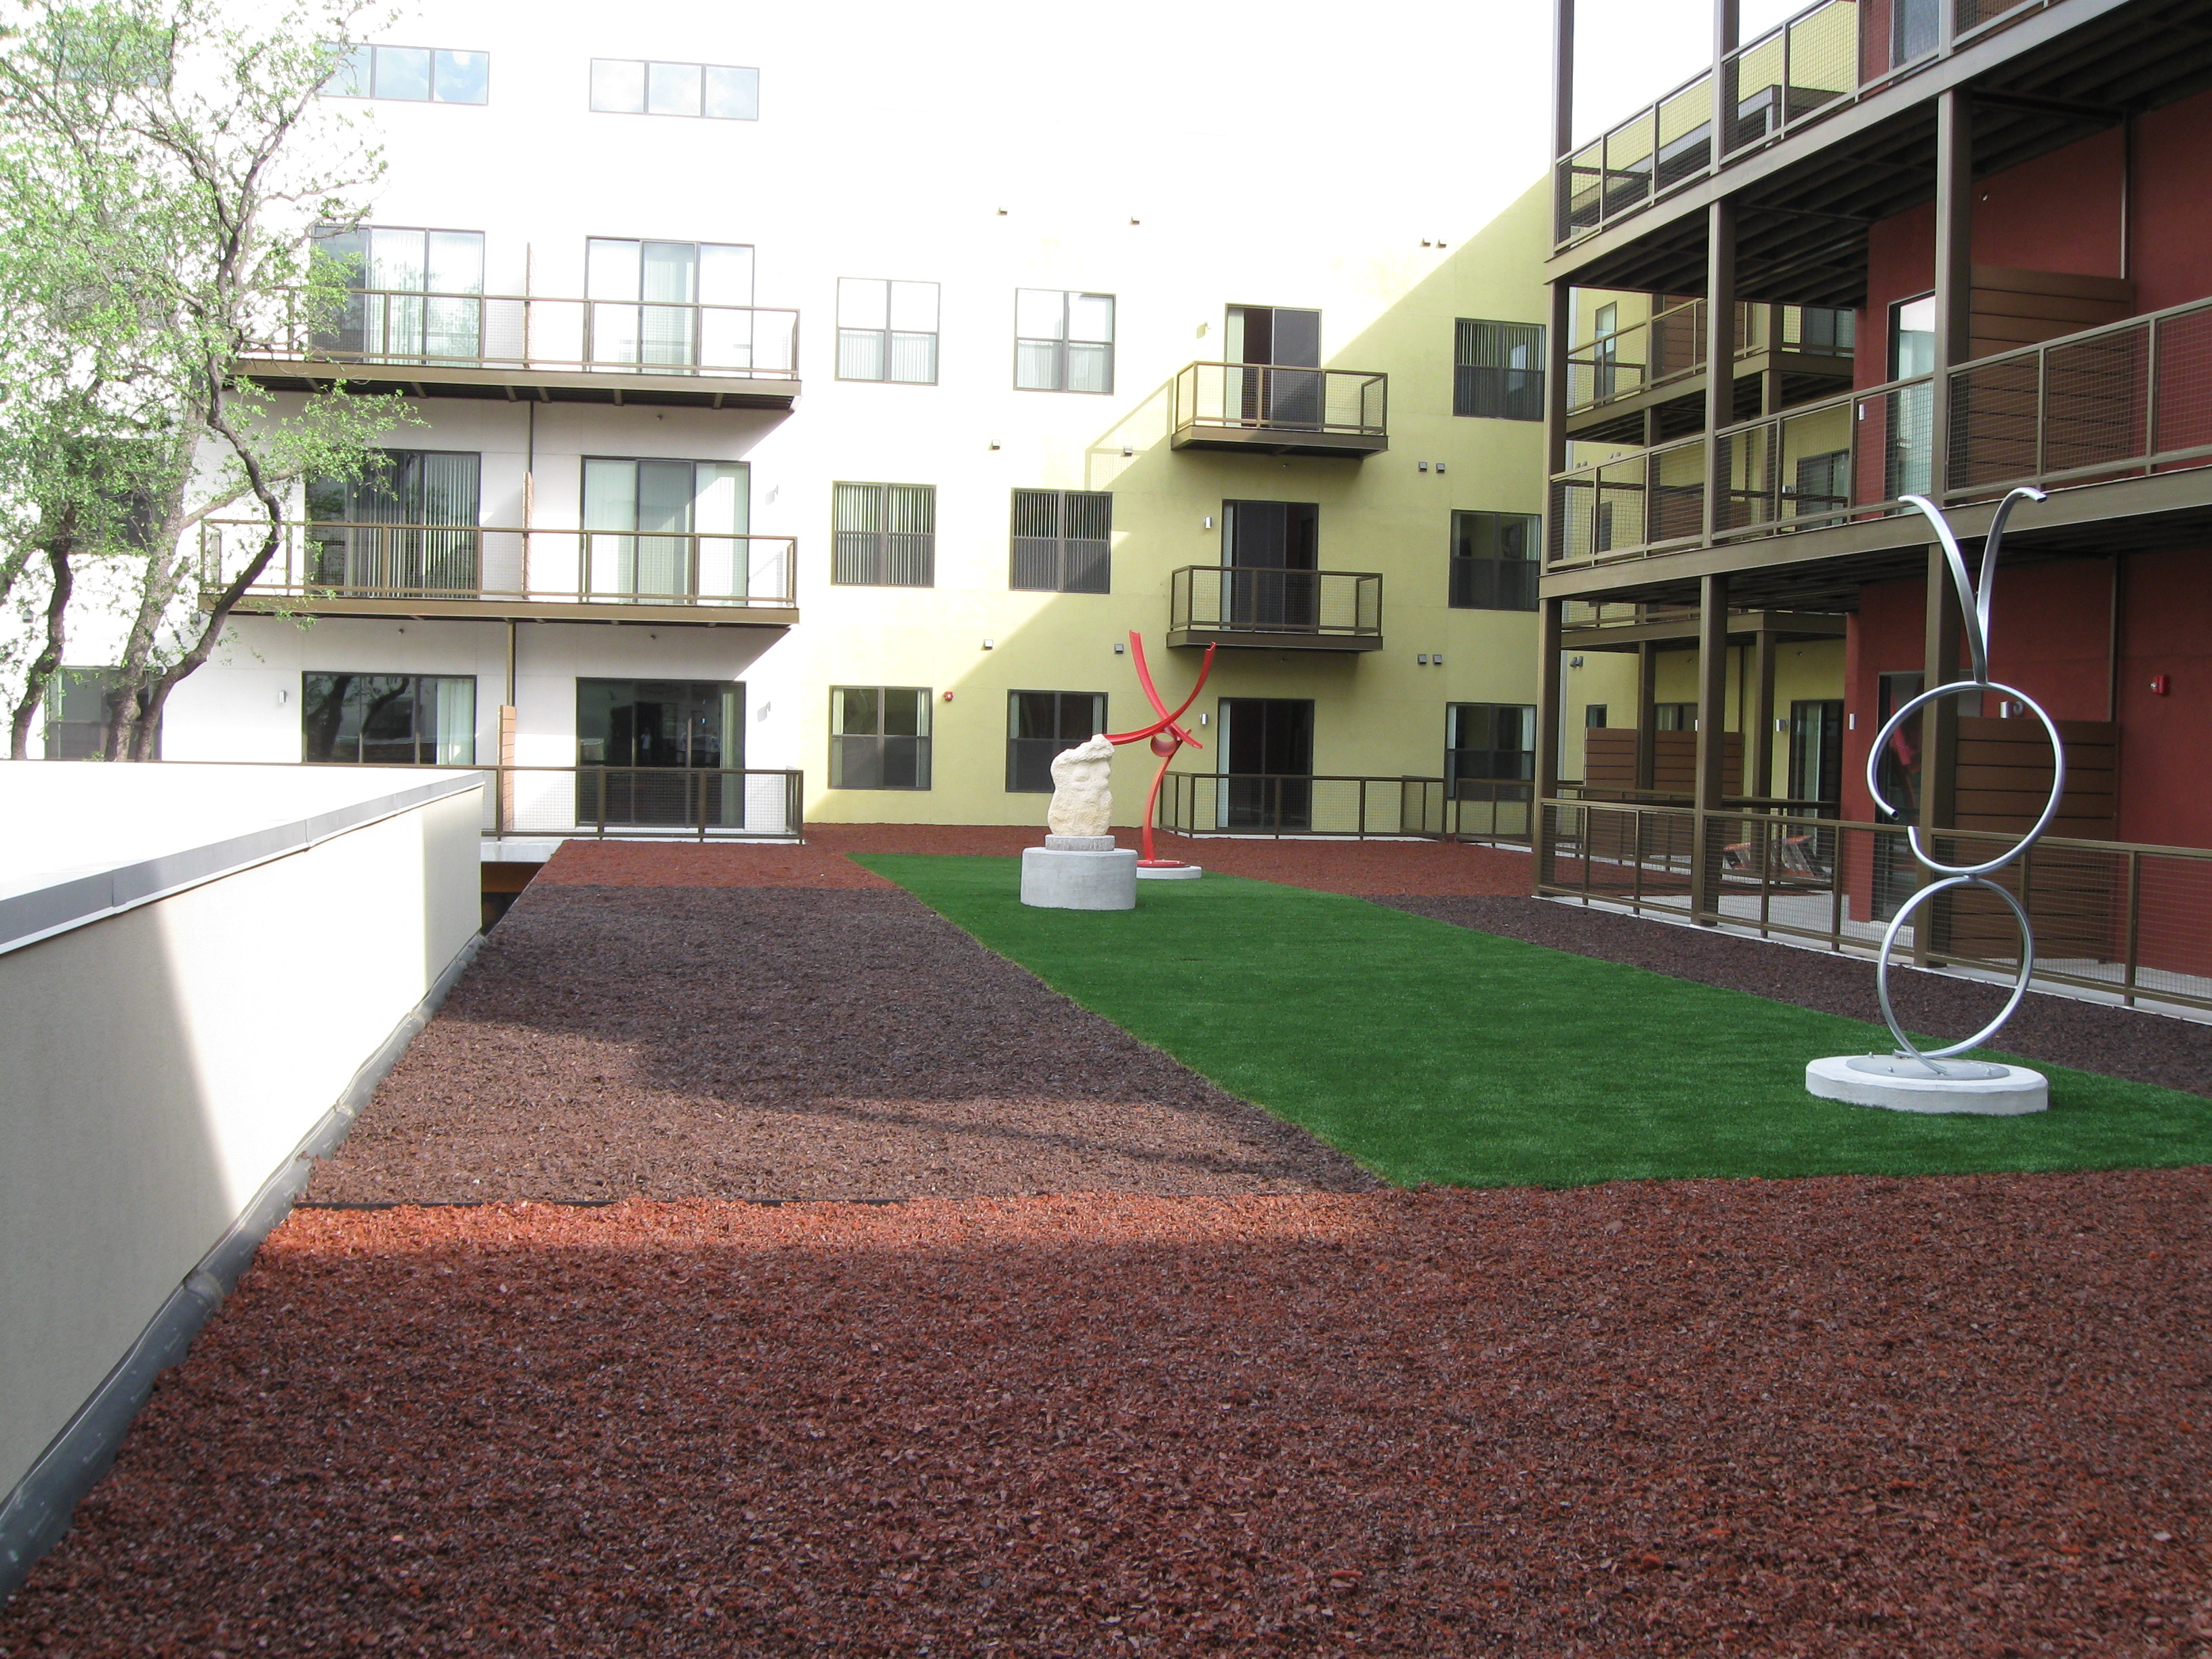 Lone star synthetic turf in dallas tx 75243 for Home turf texas landscape design llc